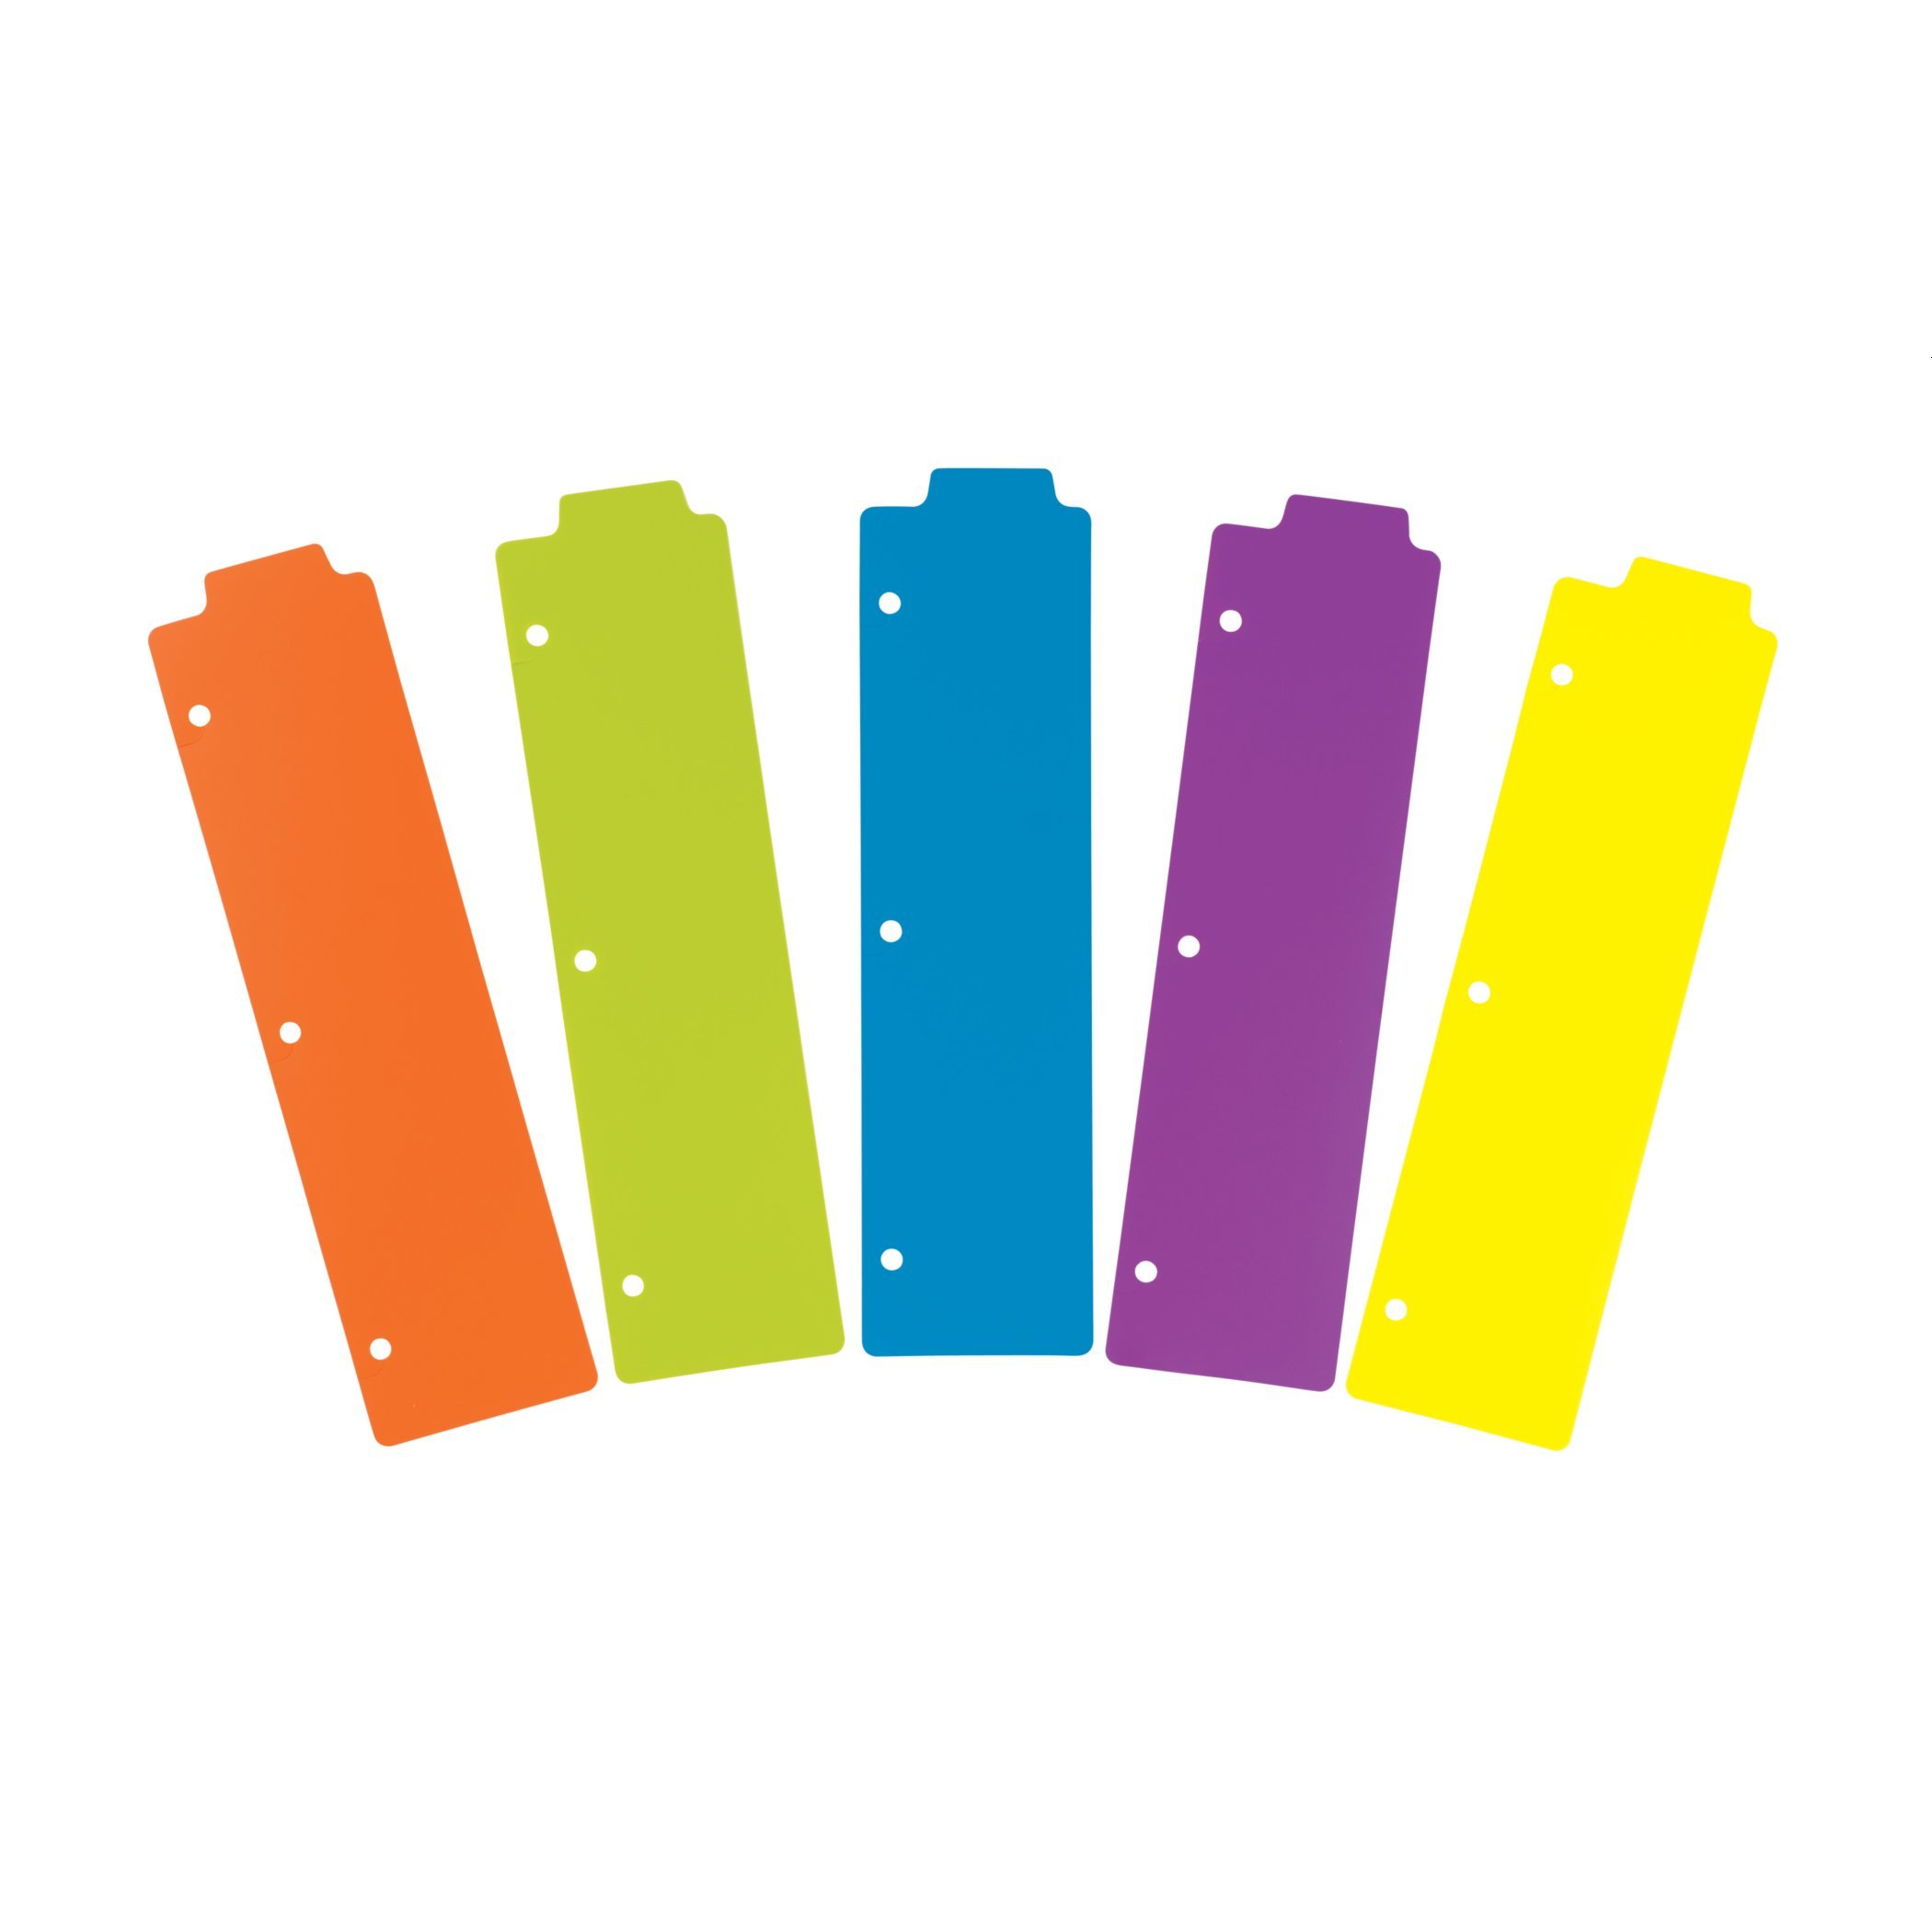 Avery Dennison 24908 Tabbed Snap-in Bookmark Plastic Dividers, Assorted Solid Color, 5-tab, 3x11 1 2 by Avery Dennison